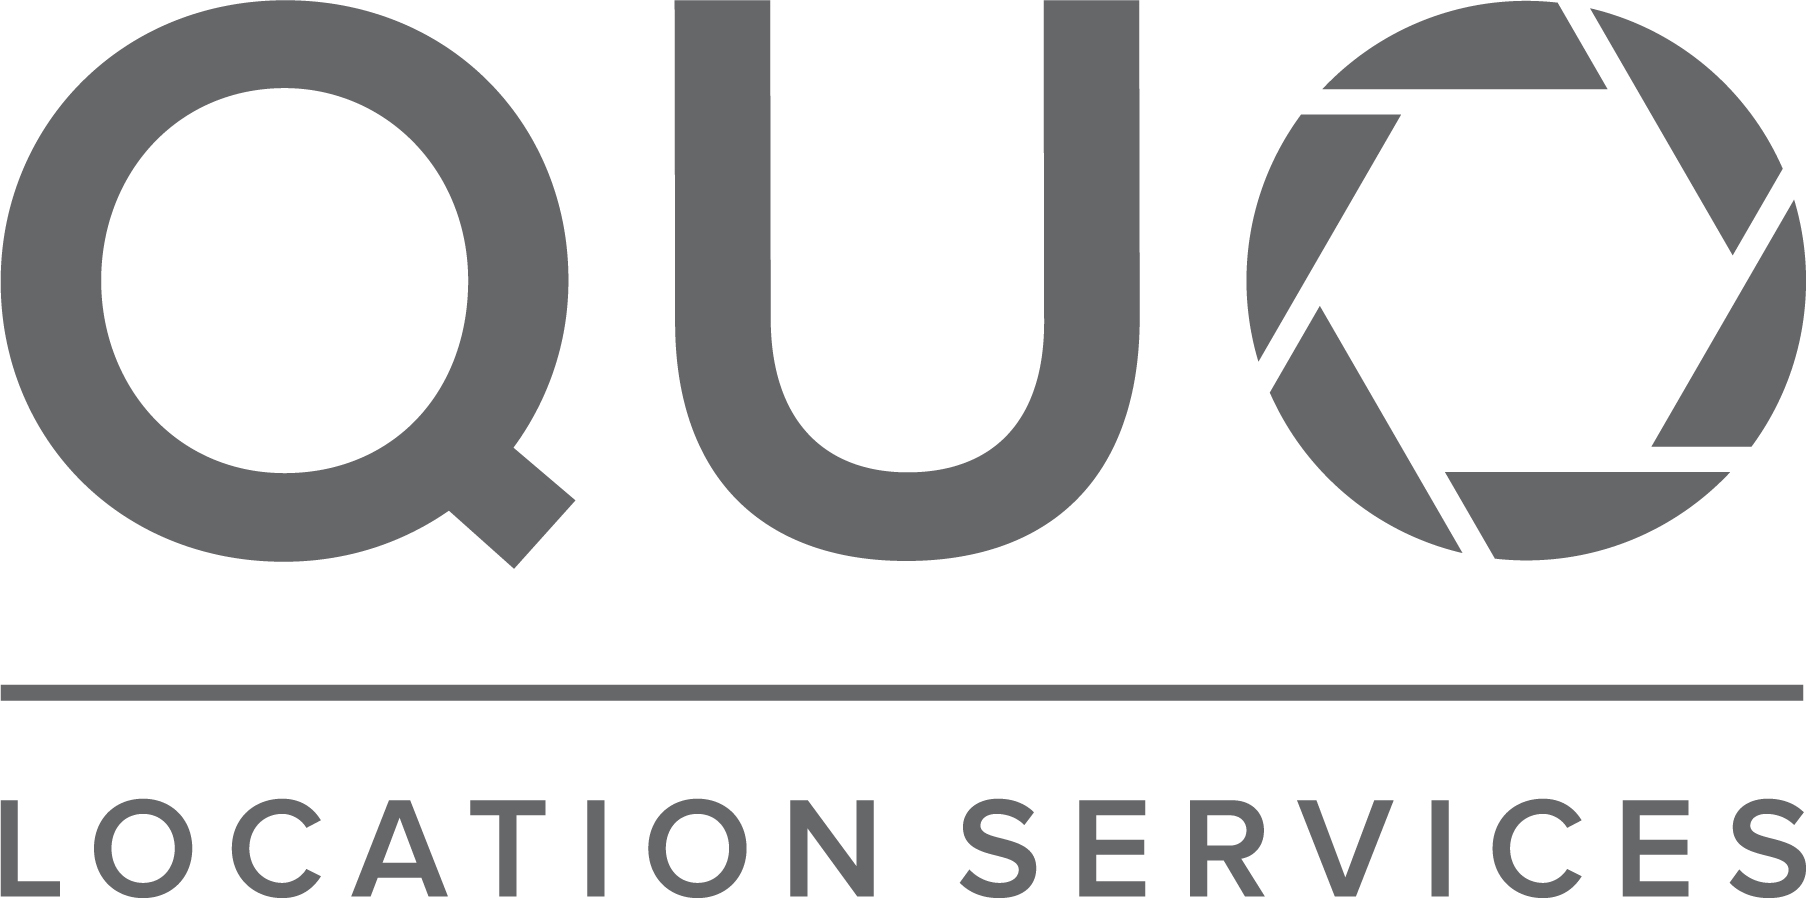 QUO Location Service